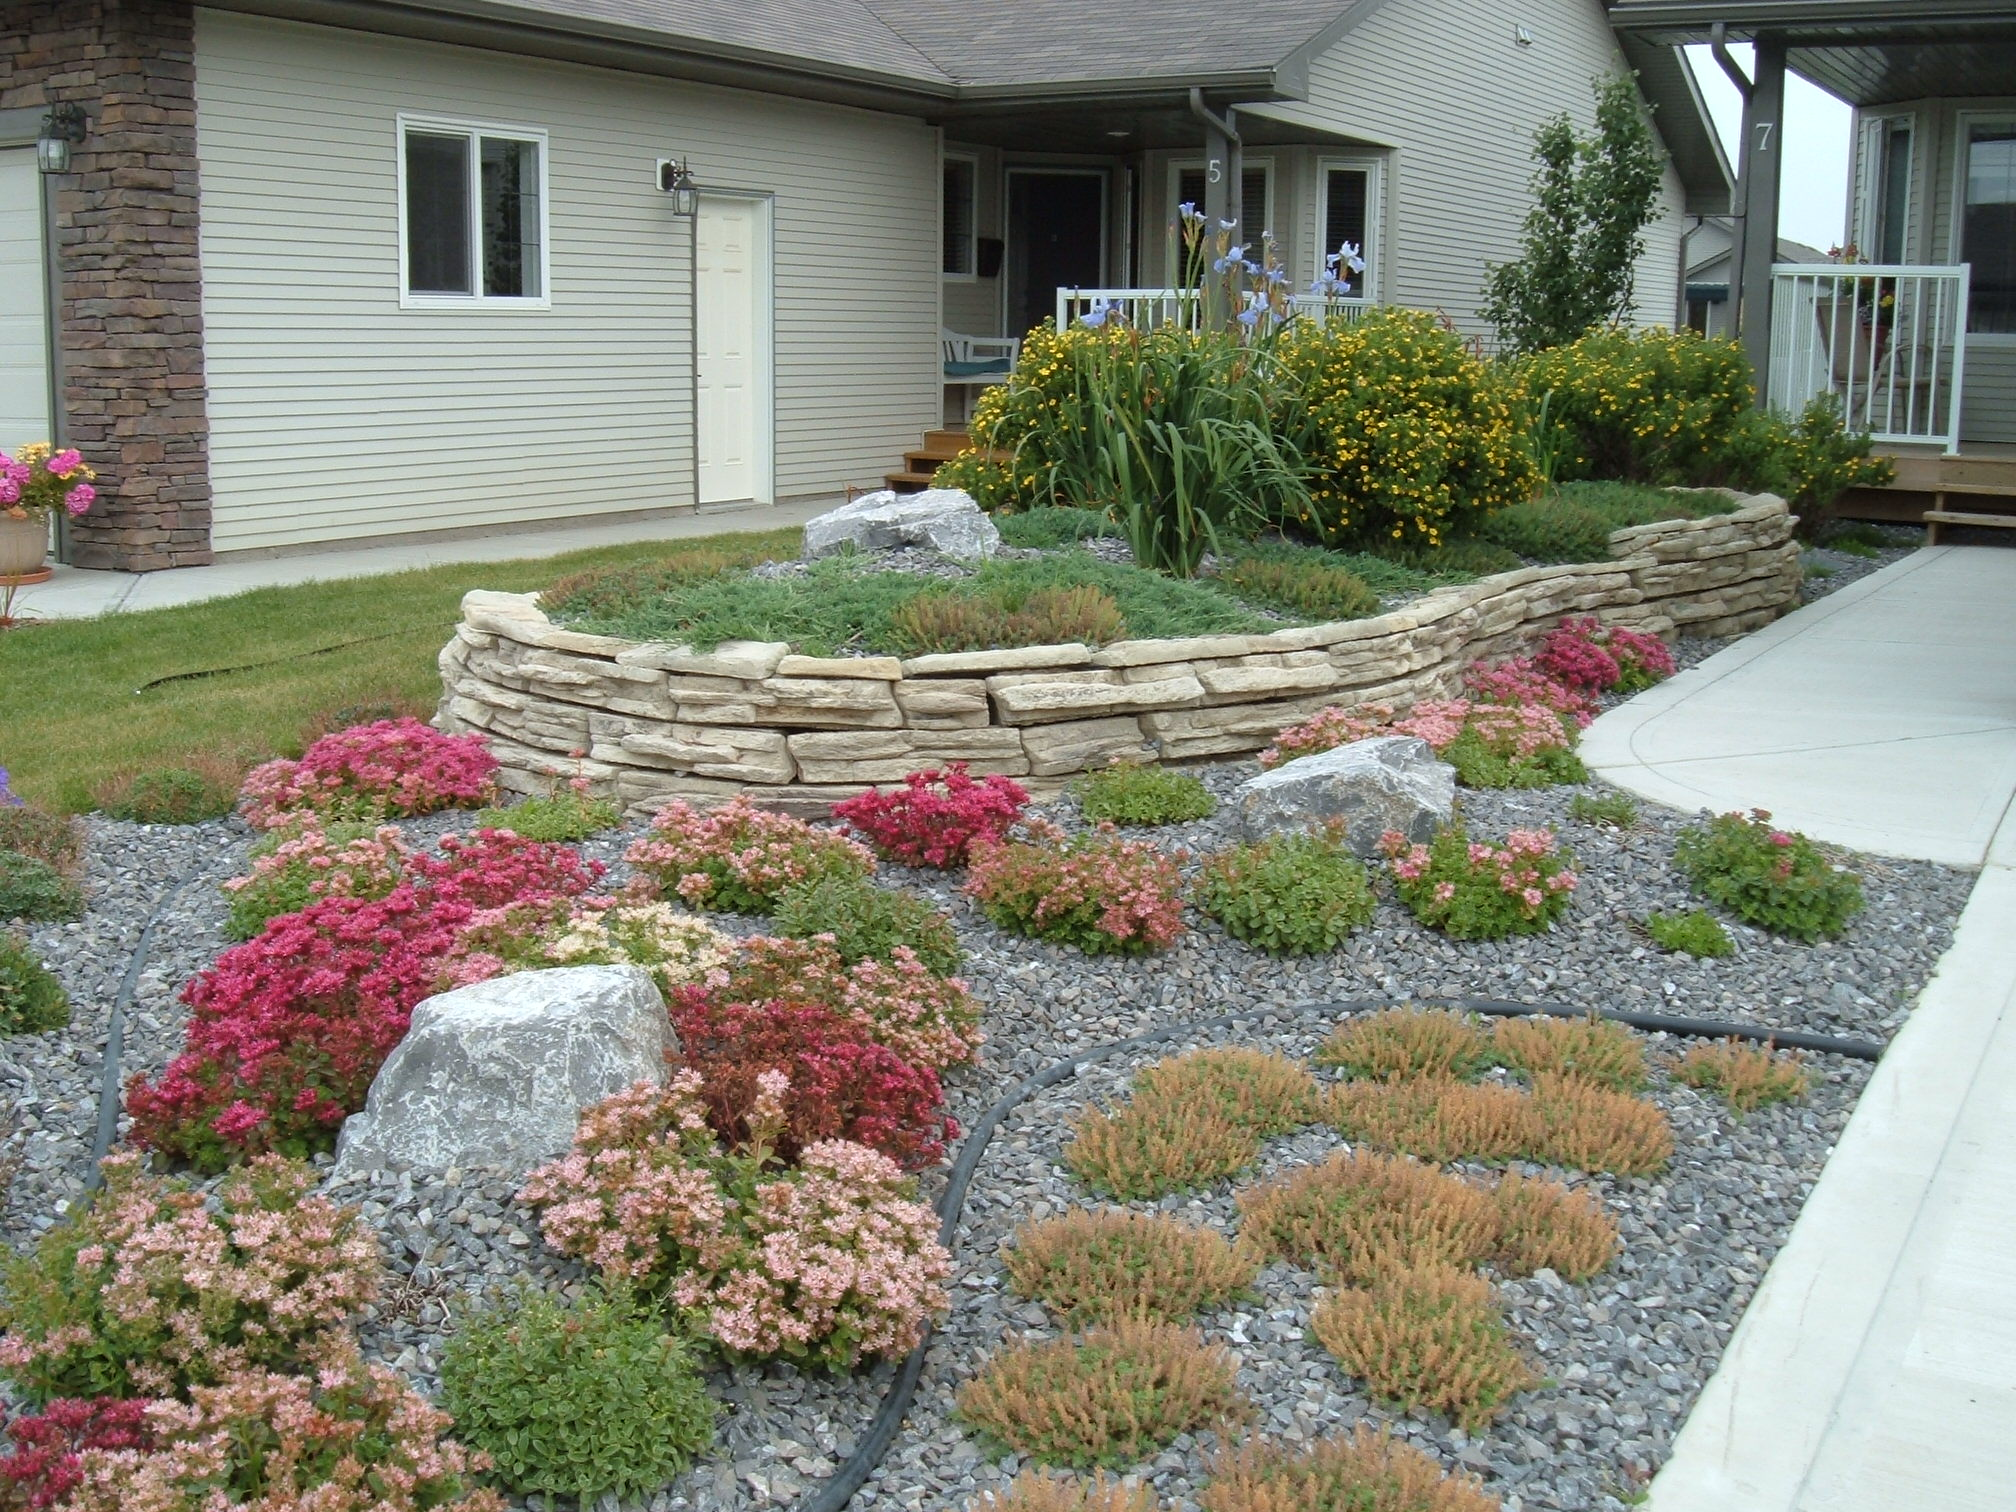 minimal maintenance creative landscape design